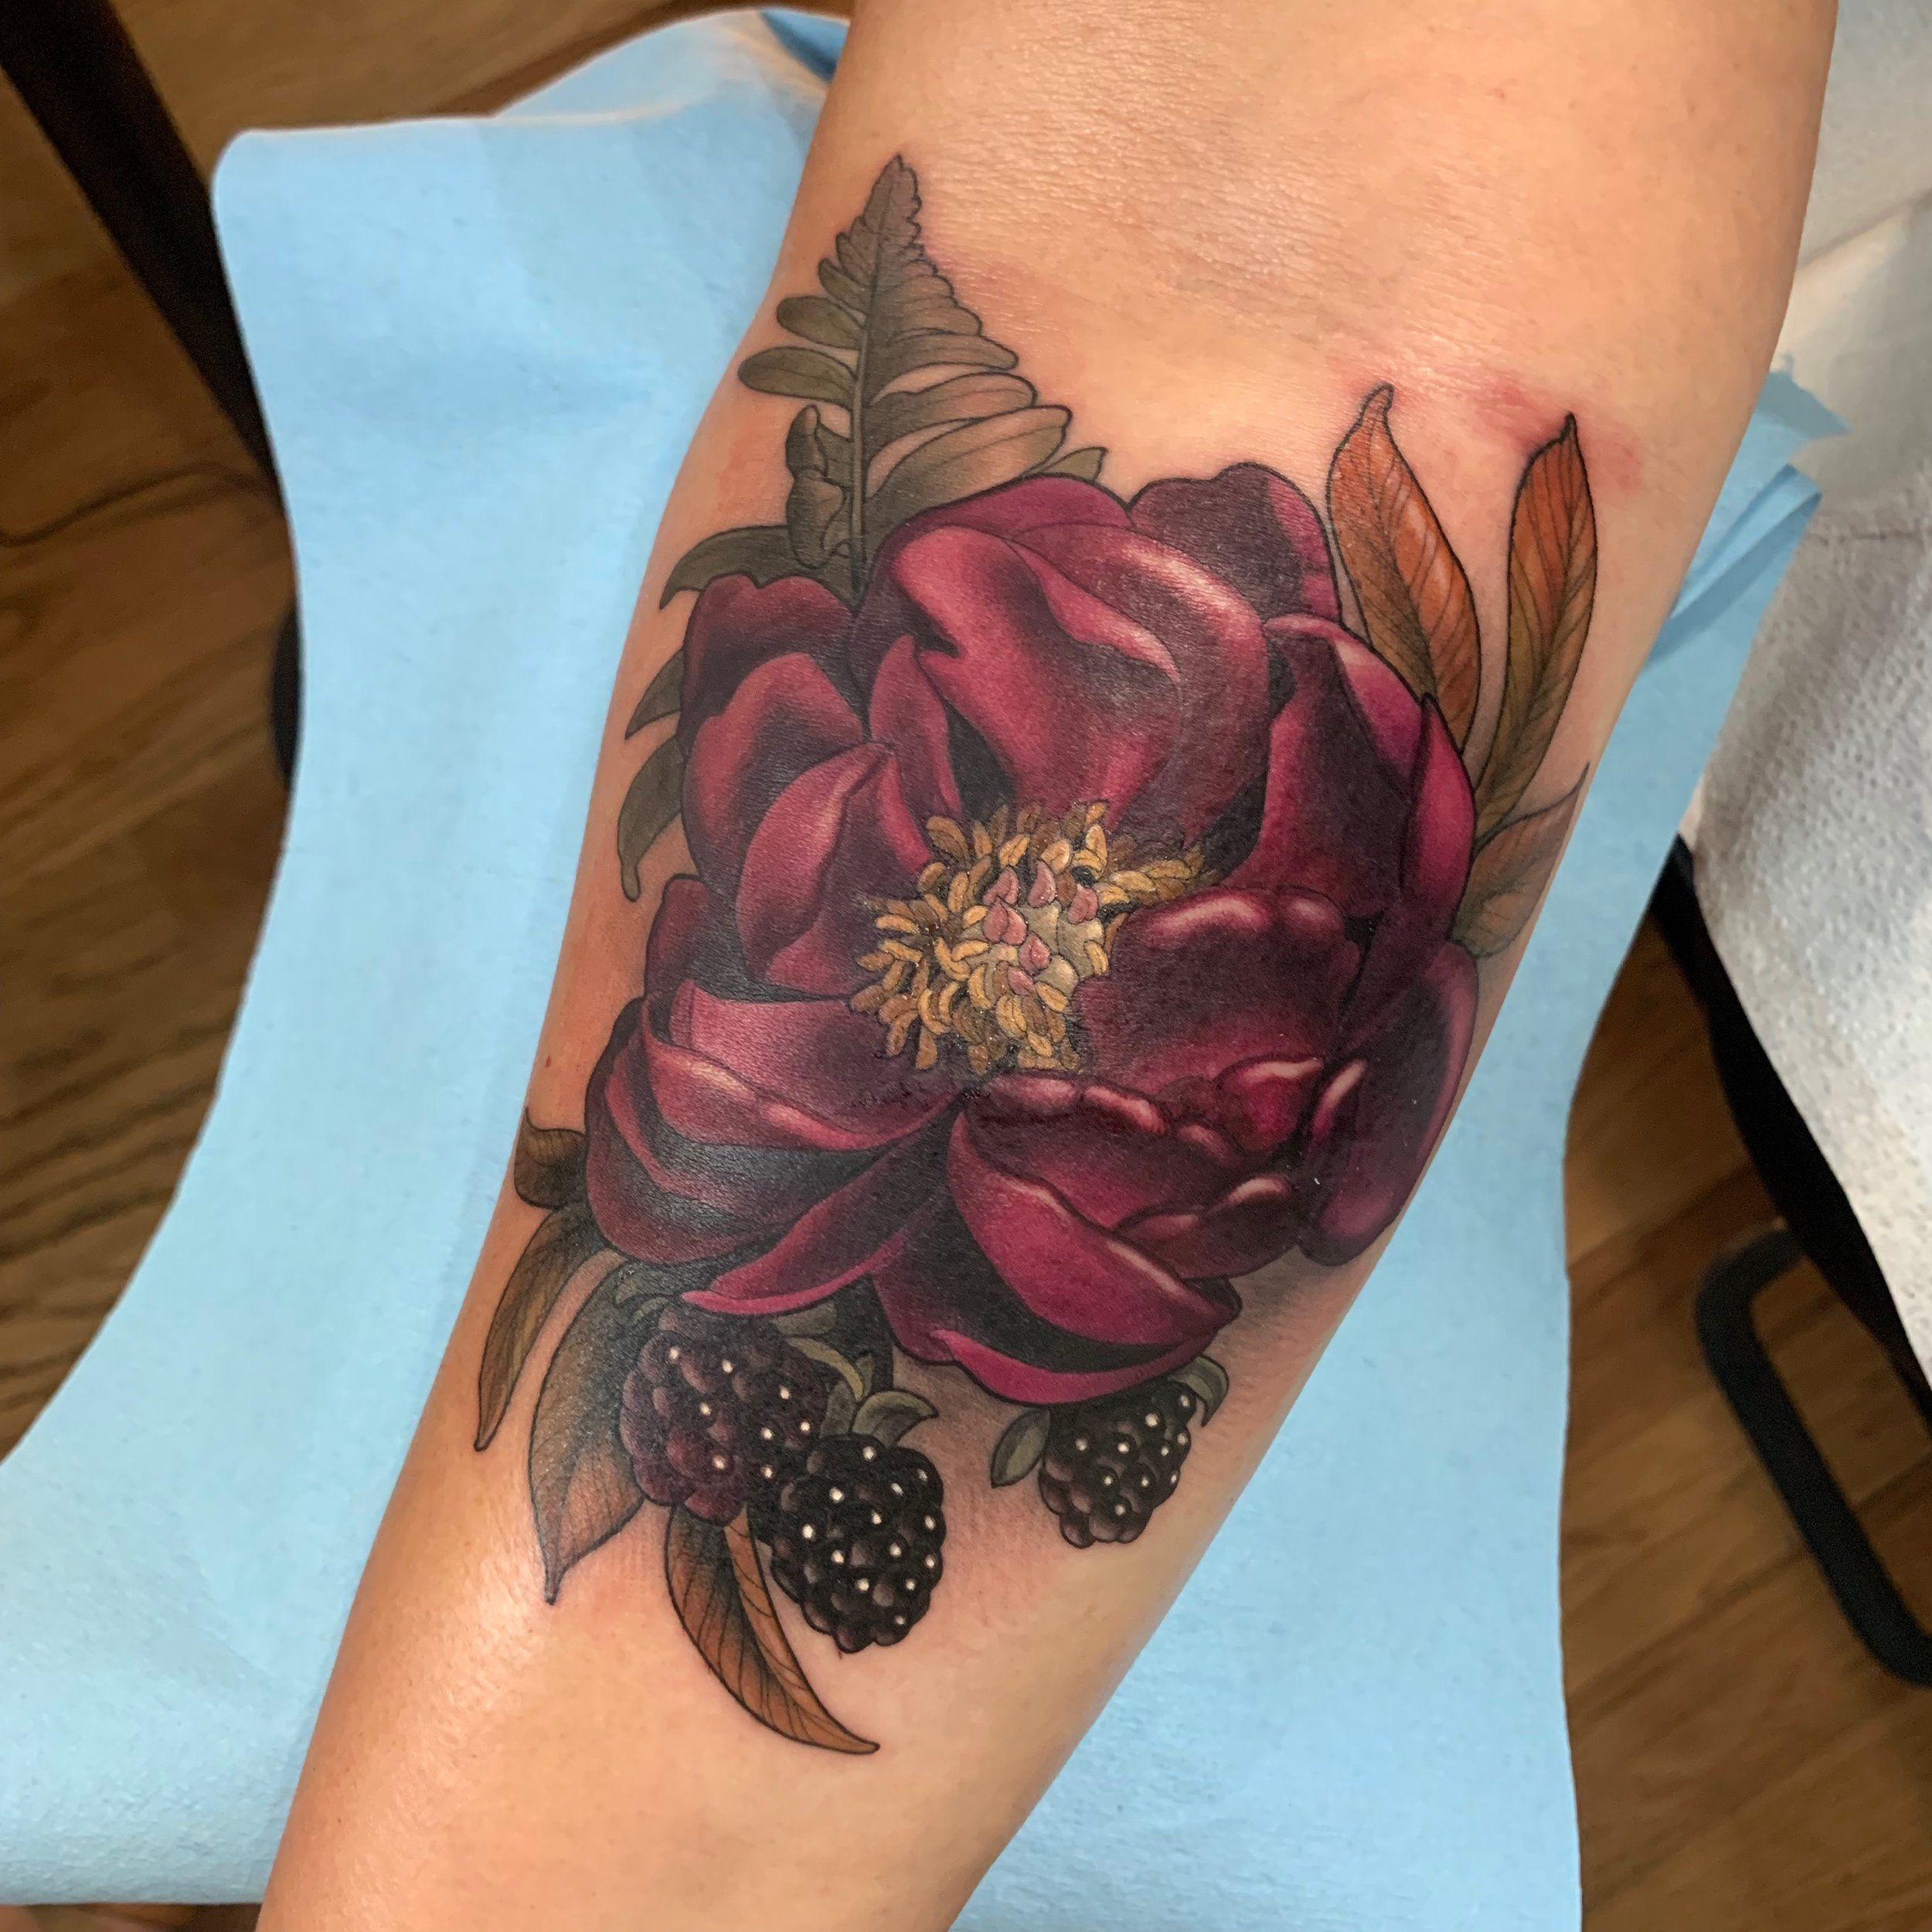 Gallery makkala rose scar cover up tattoo coverup